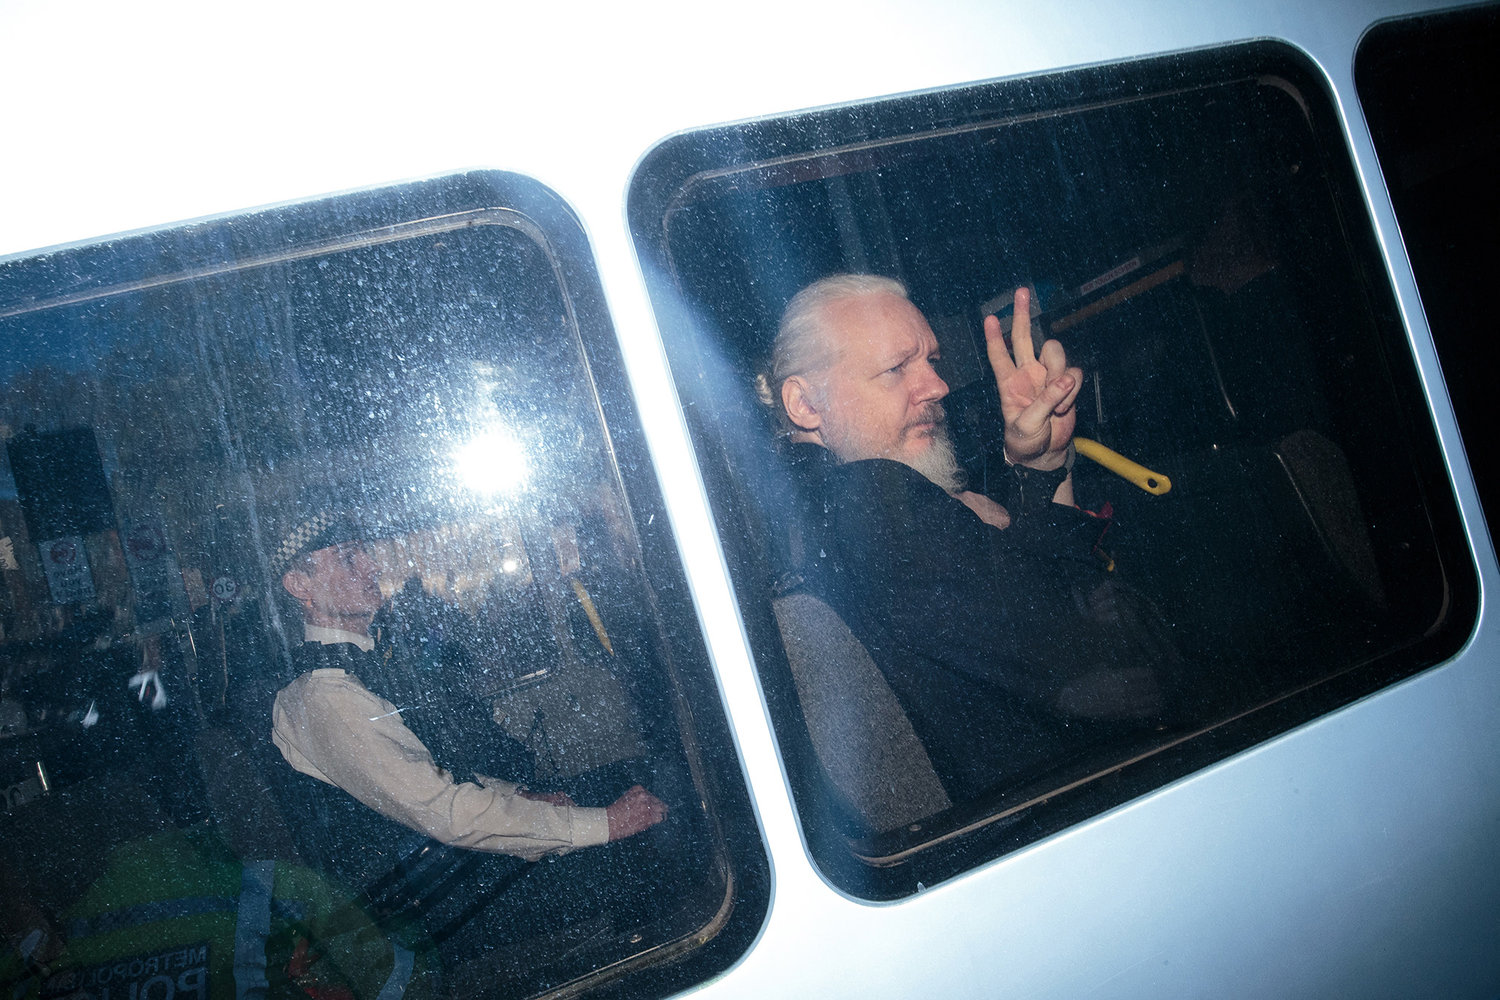 Julian Assange gestures to the media from a police vehicle on his arrival at Westminster Magistrates court on April 11, 2019 in London.